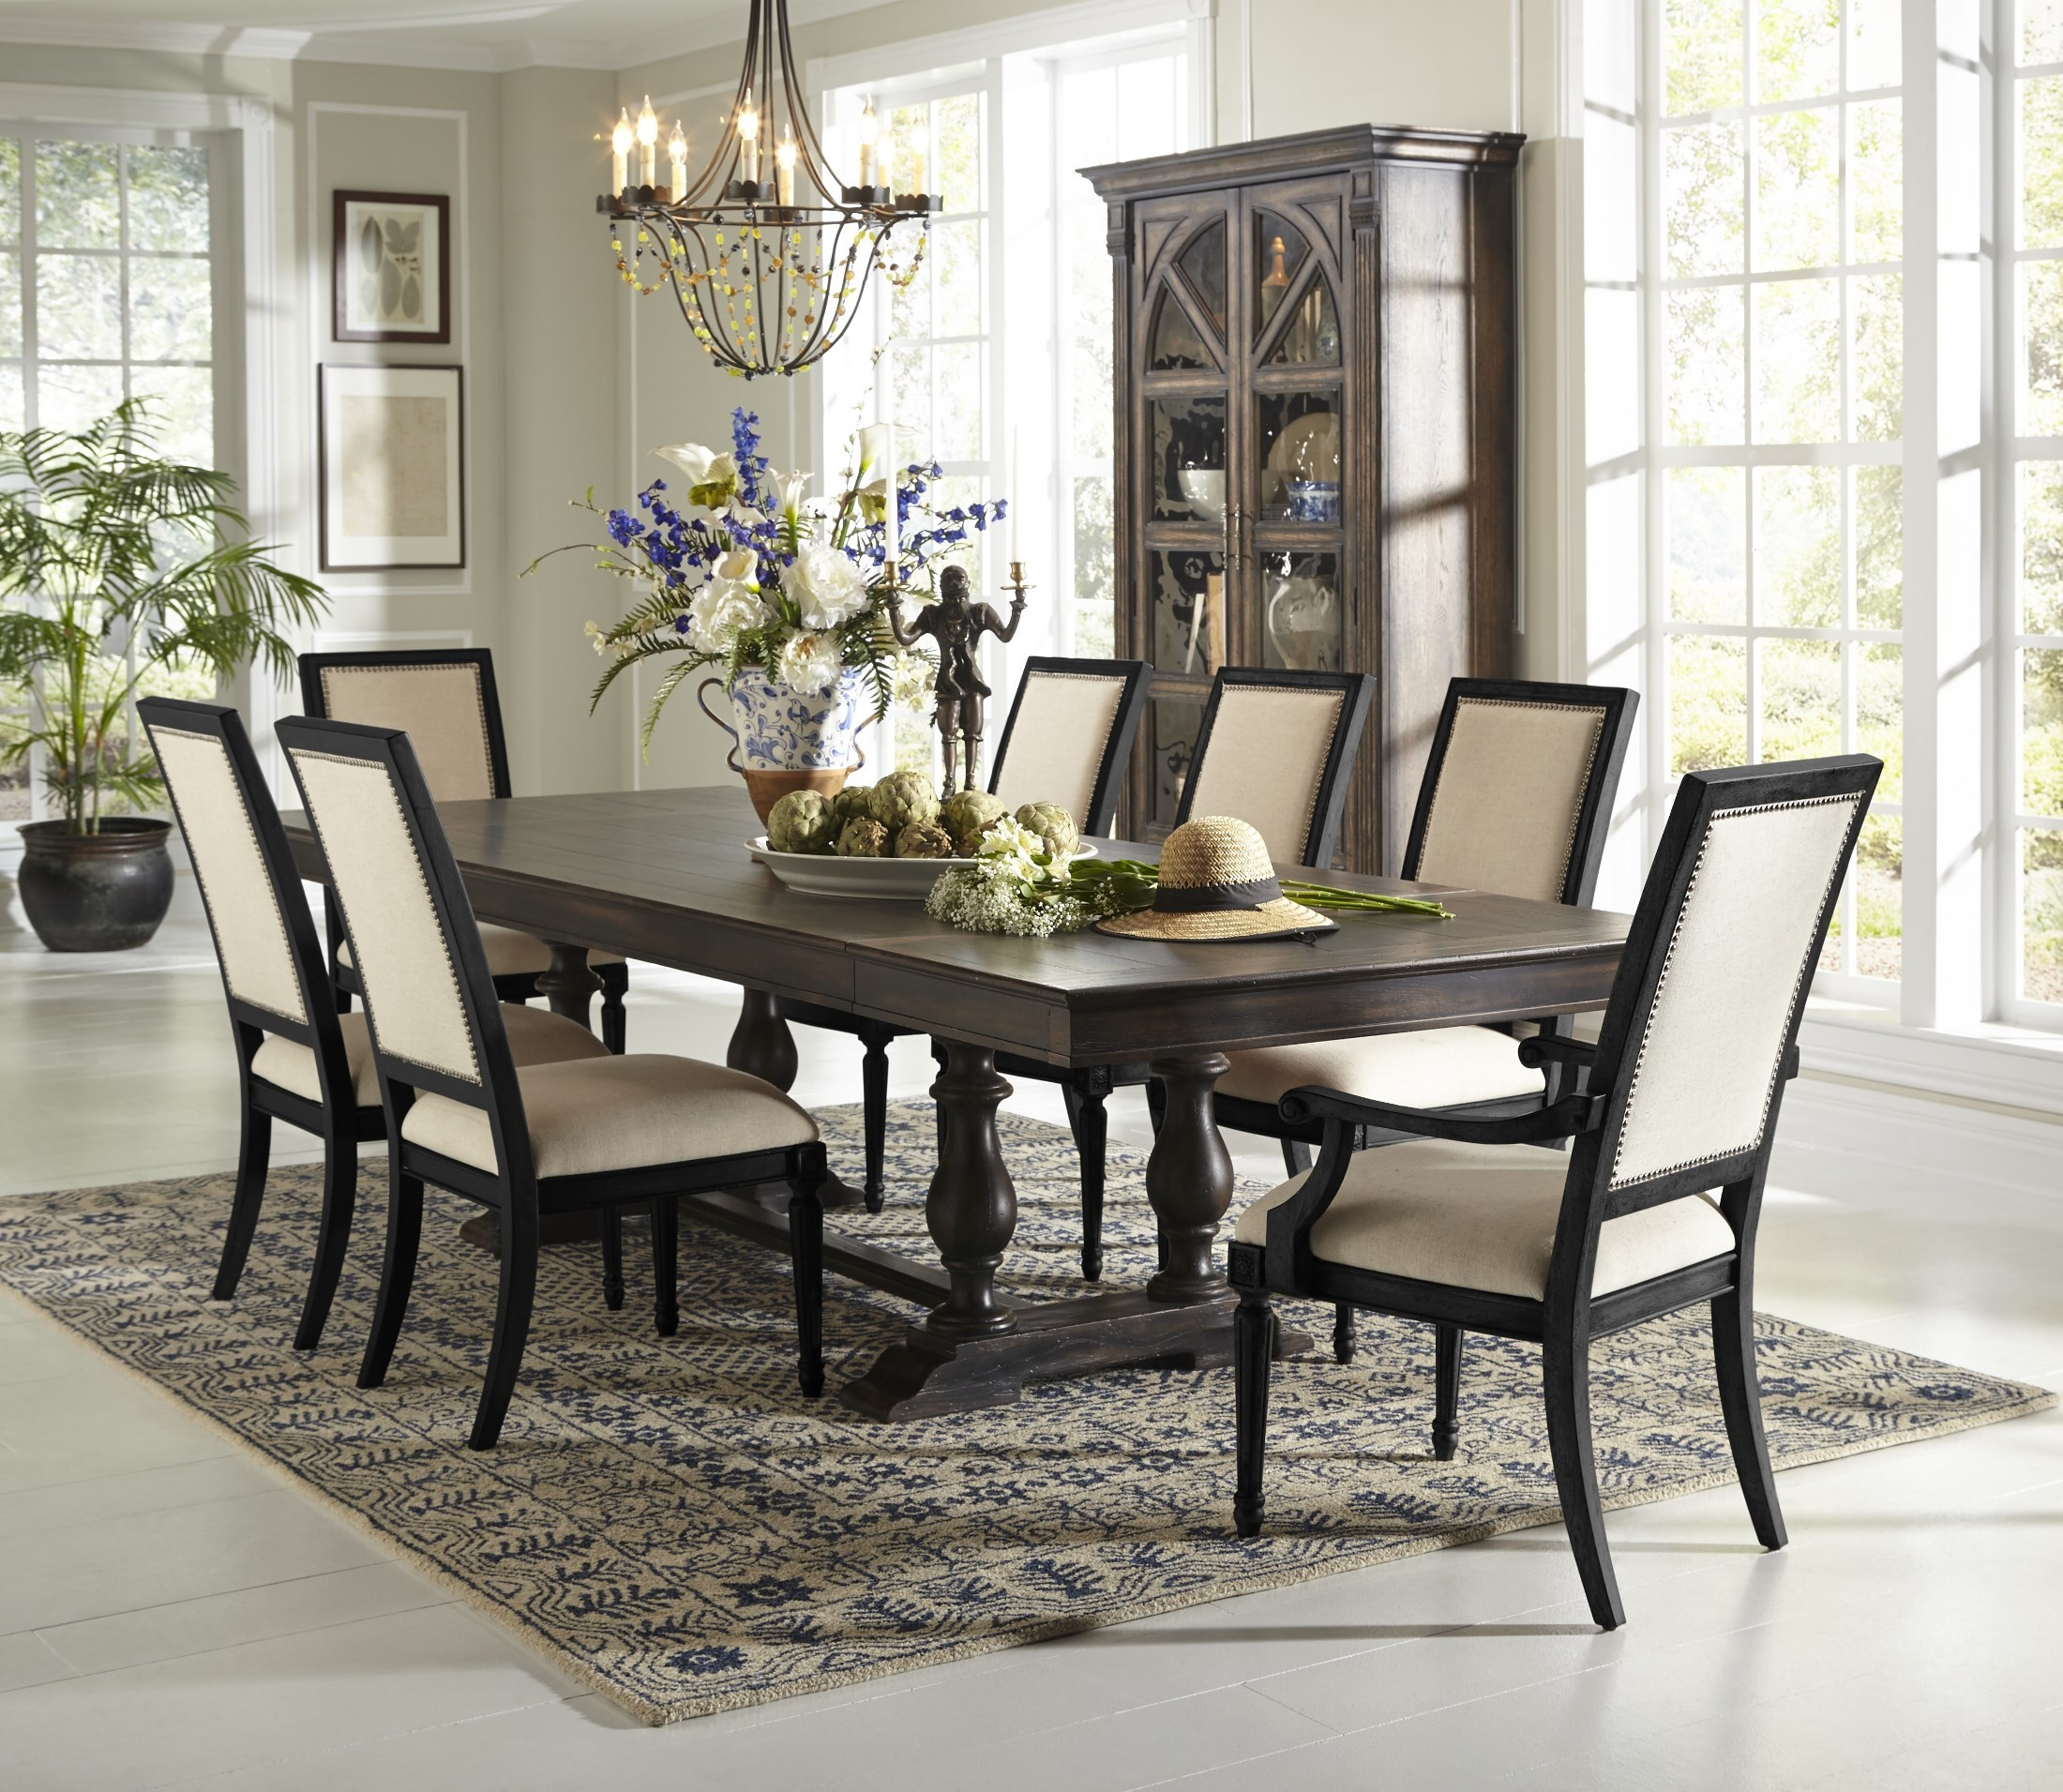 Accentrics Montserrat Extendable Dining Table from Pulaski  : 201015 16205038 39203011 rp1 from colemanfurniture.com size 2200 x 1911 jpeg 875kB